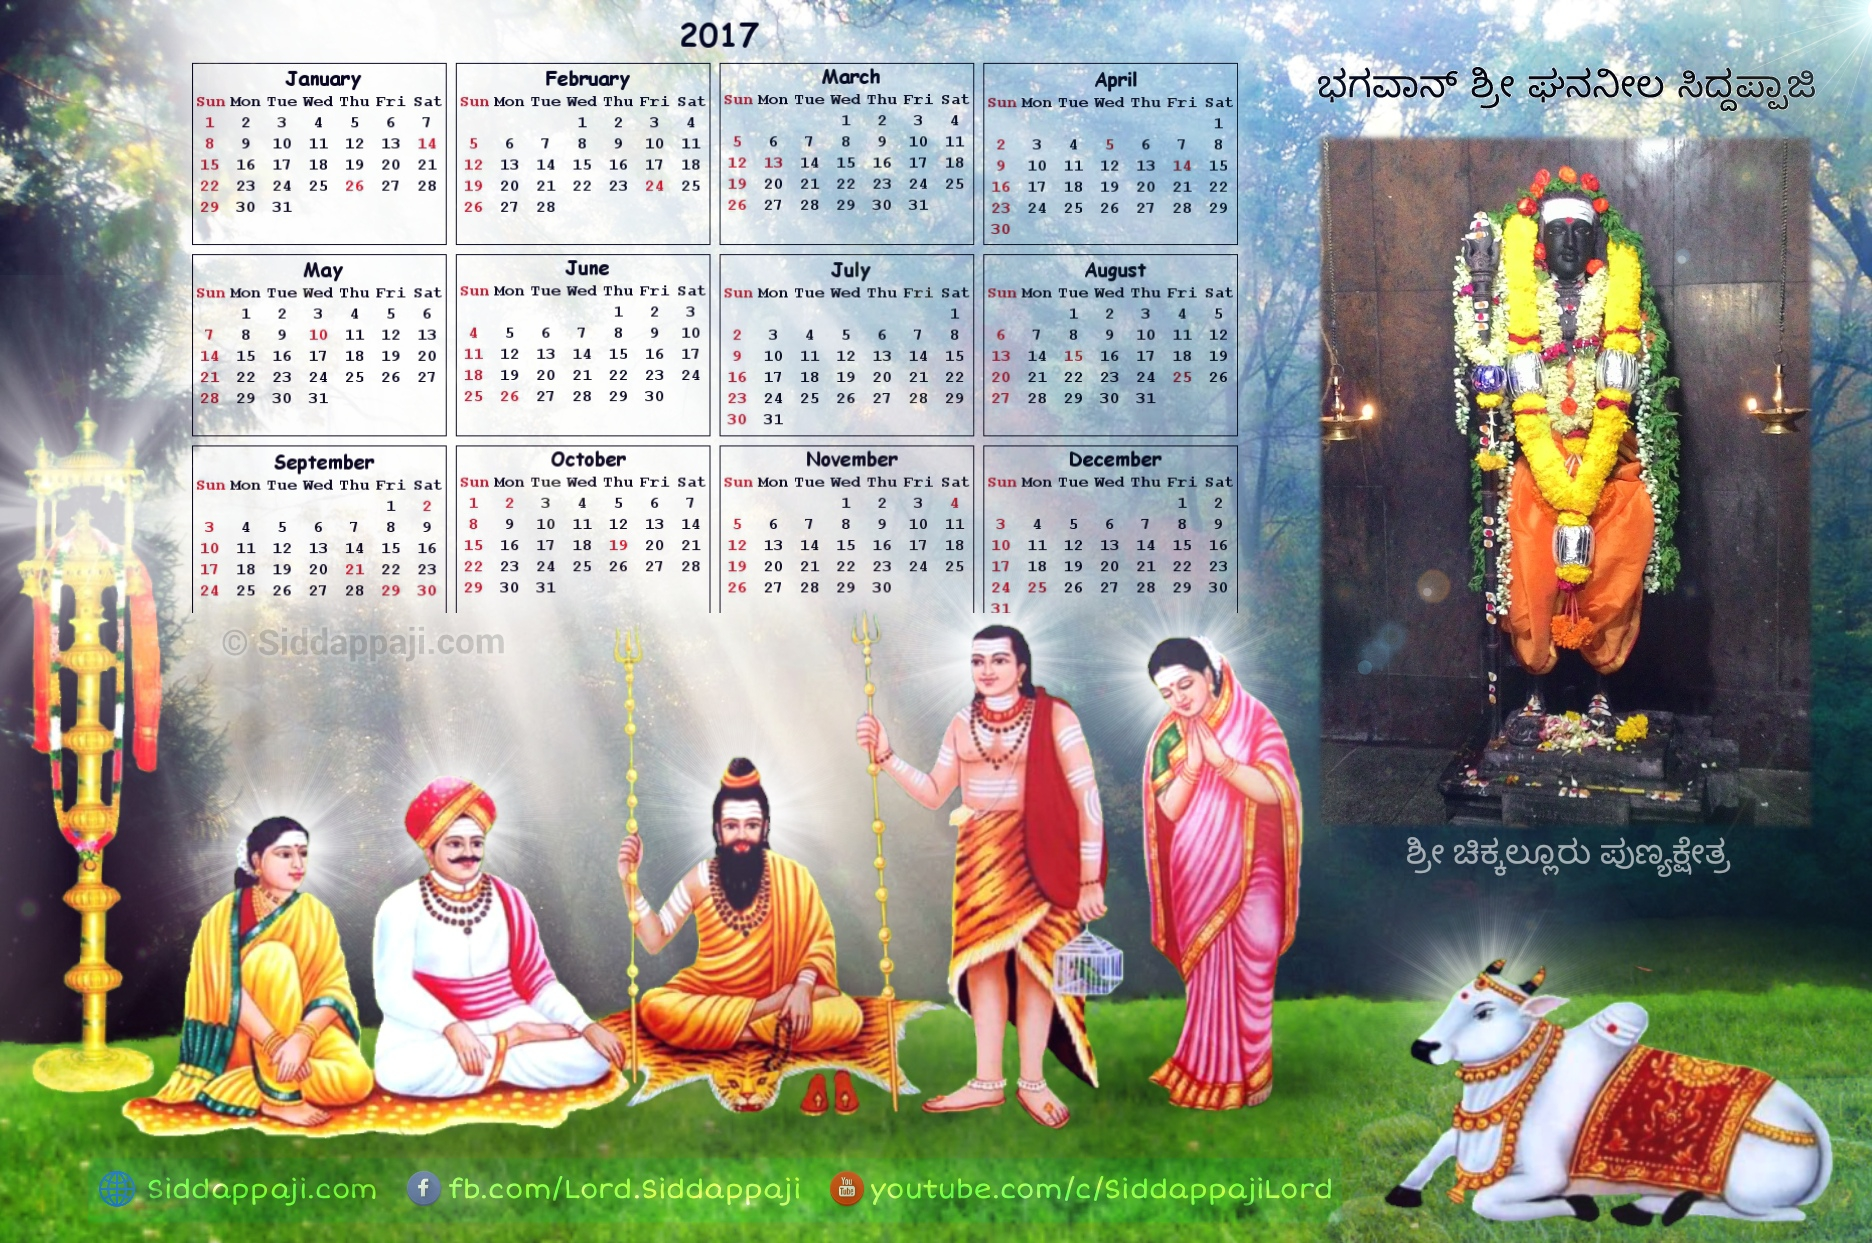 Sri Siddappaji Calendar 2017 (Free Download)